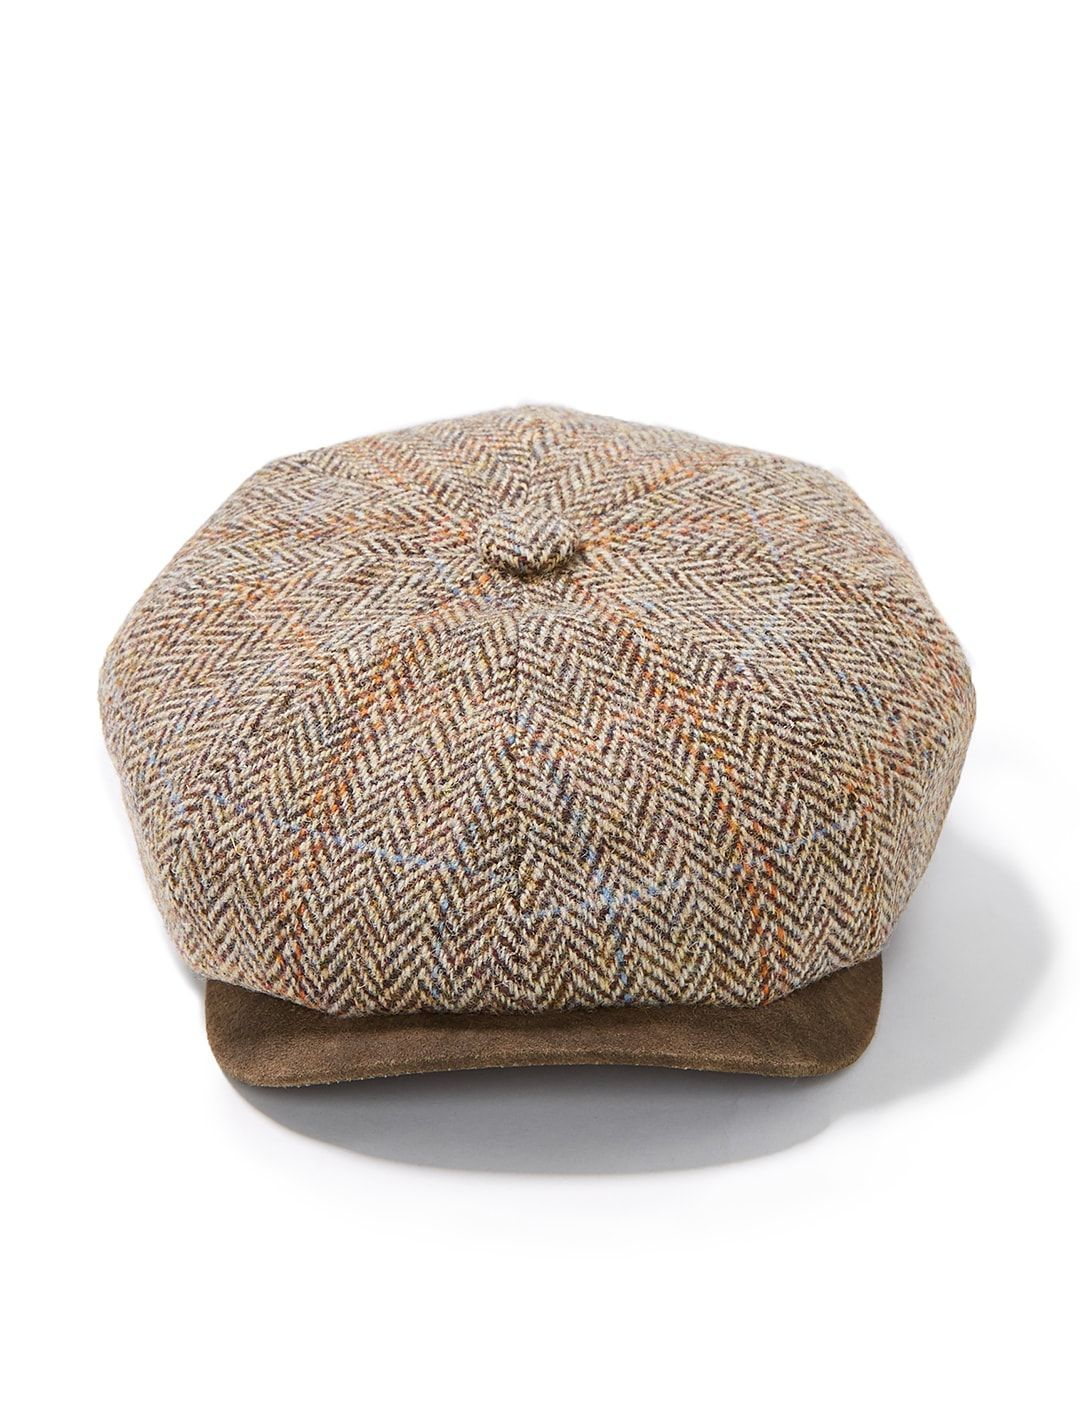 b5ed90c0bf3db Stetson Men s HARRIS TWEED PLAID STW280. Details